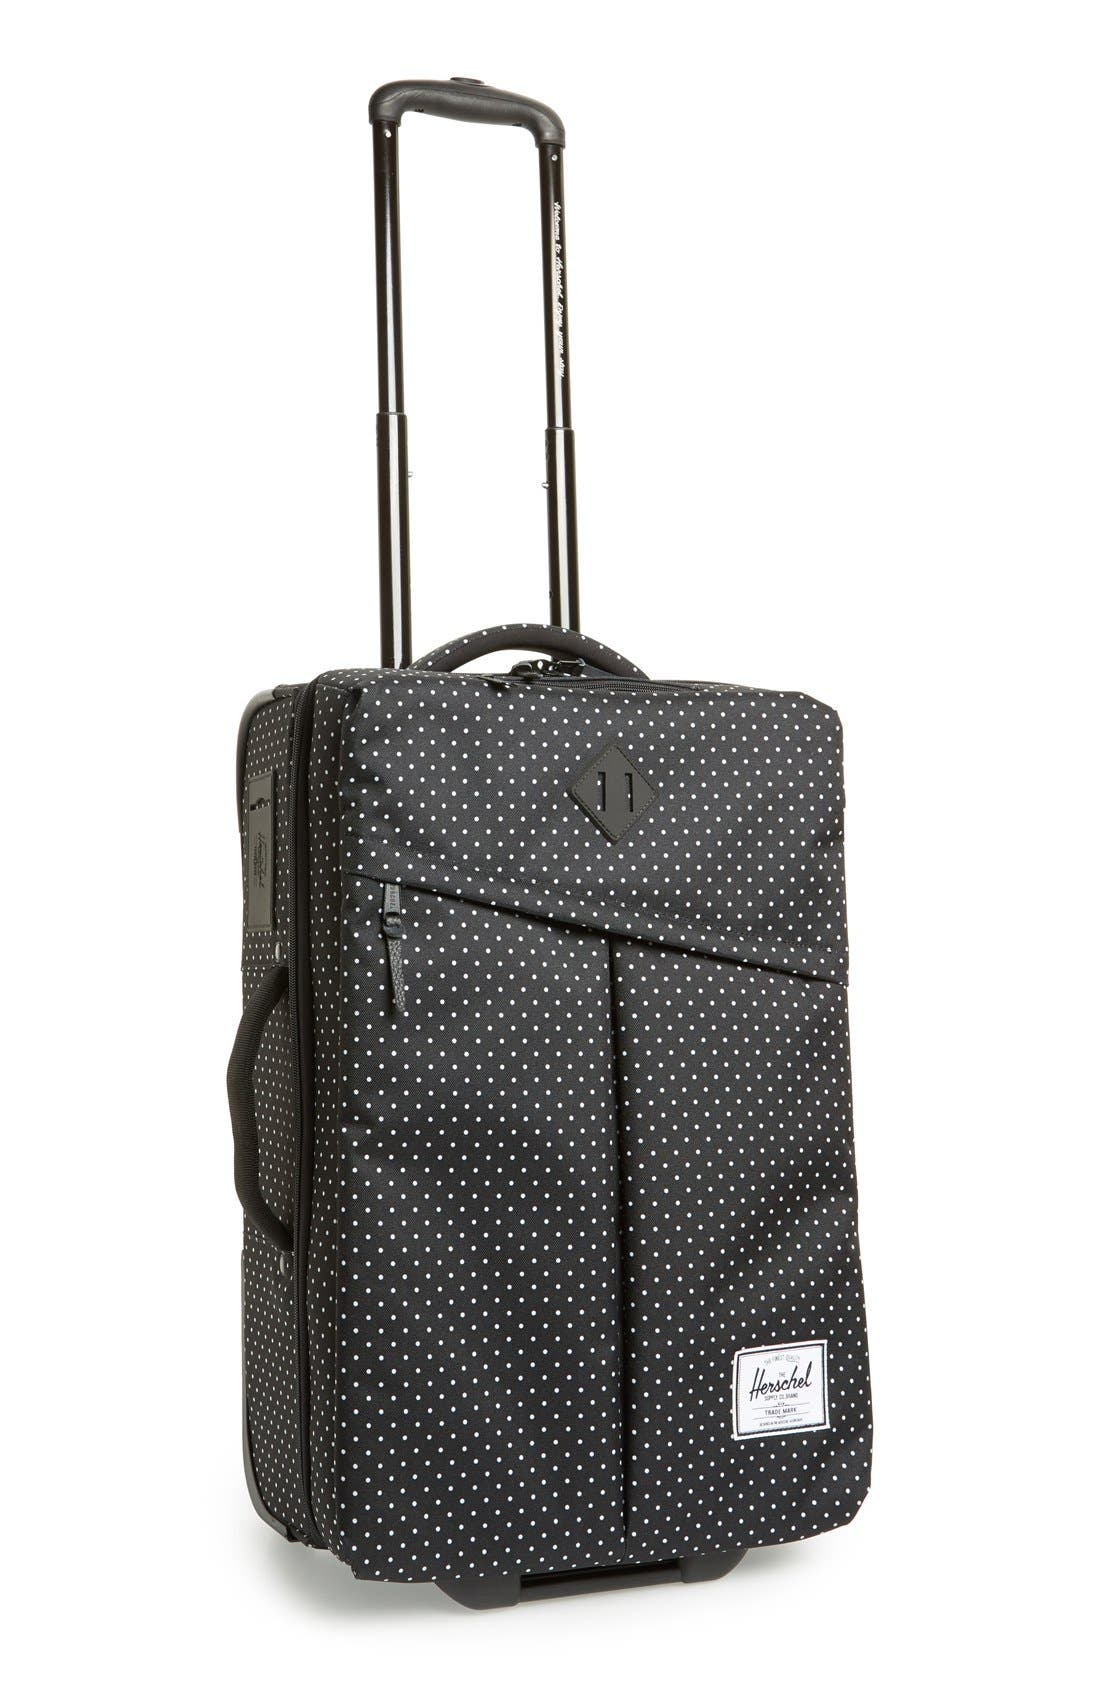 HERSCHEL SUPPLY CO. Herschel Supply Co 'Campaign' Wheeled Carry-On, Main, color, 005